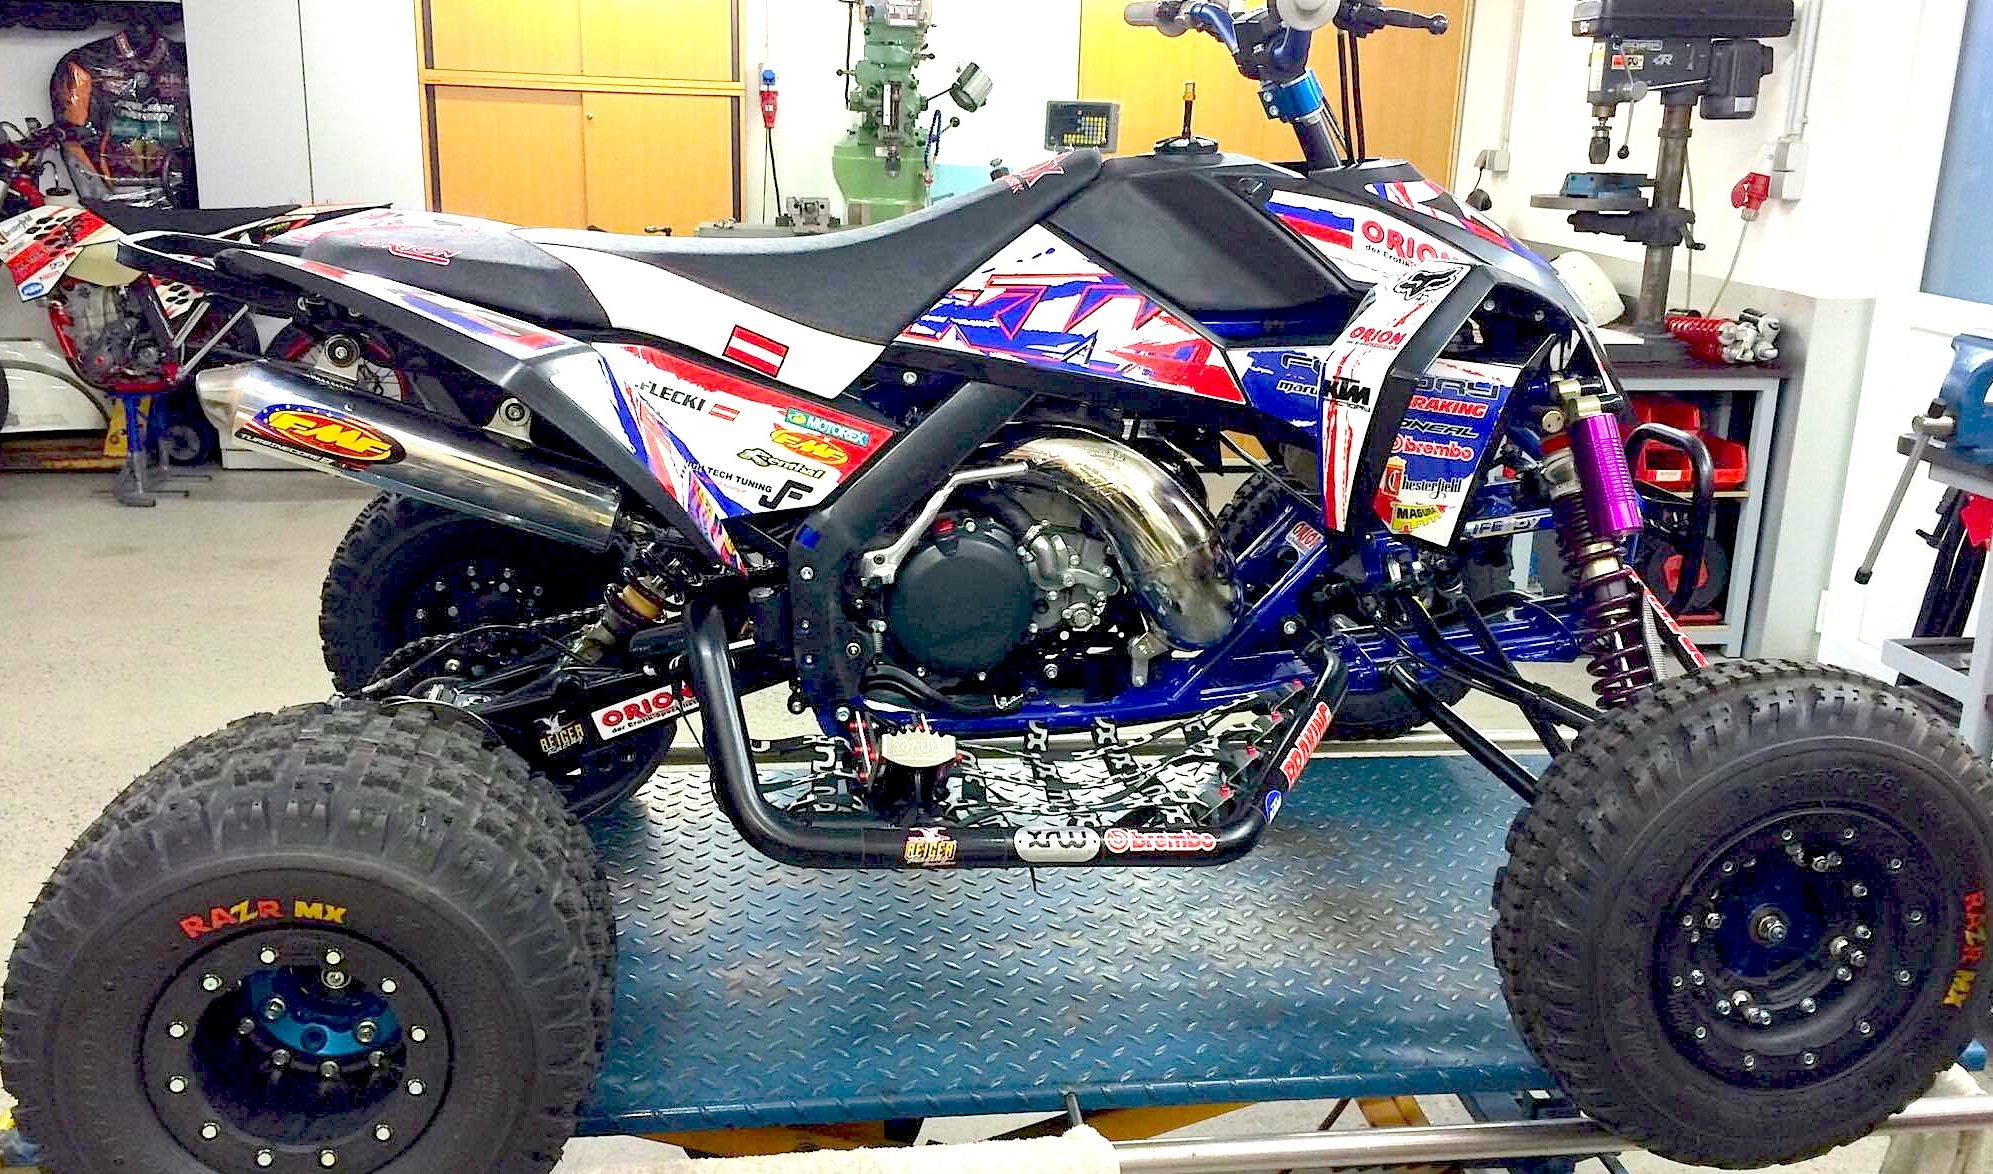 Owners Report Yamaha Blaster besides Buyers Guide 2017 4x4 Atvs furthermore 2015 125 Shootout as well Ktm 380 Sx 2 Stroke Atv With 72 Horsepower further Yamaha fzr1000 87. on yamaha 750 two stroke